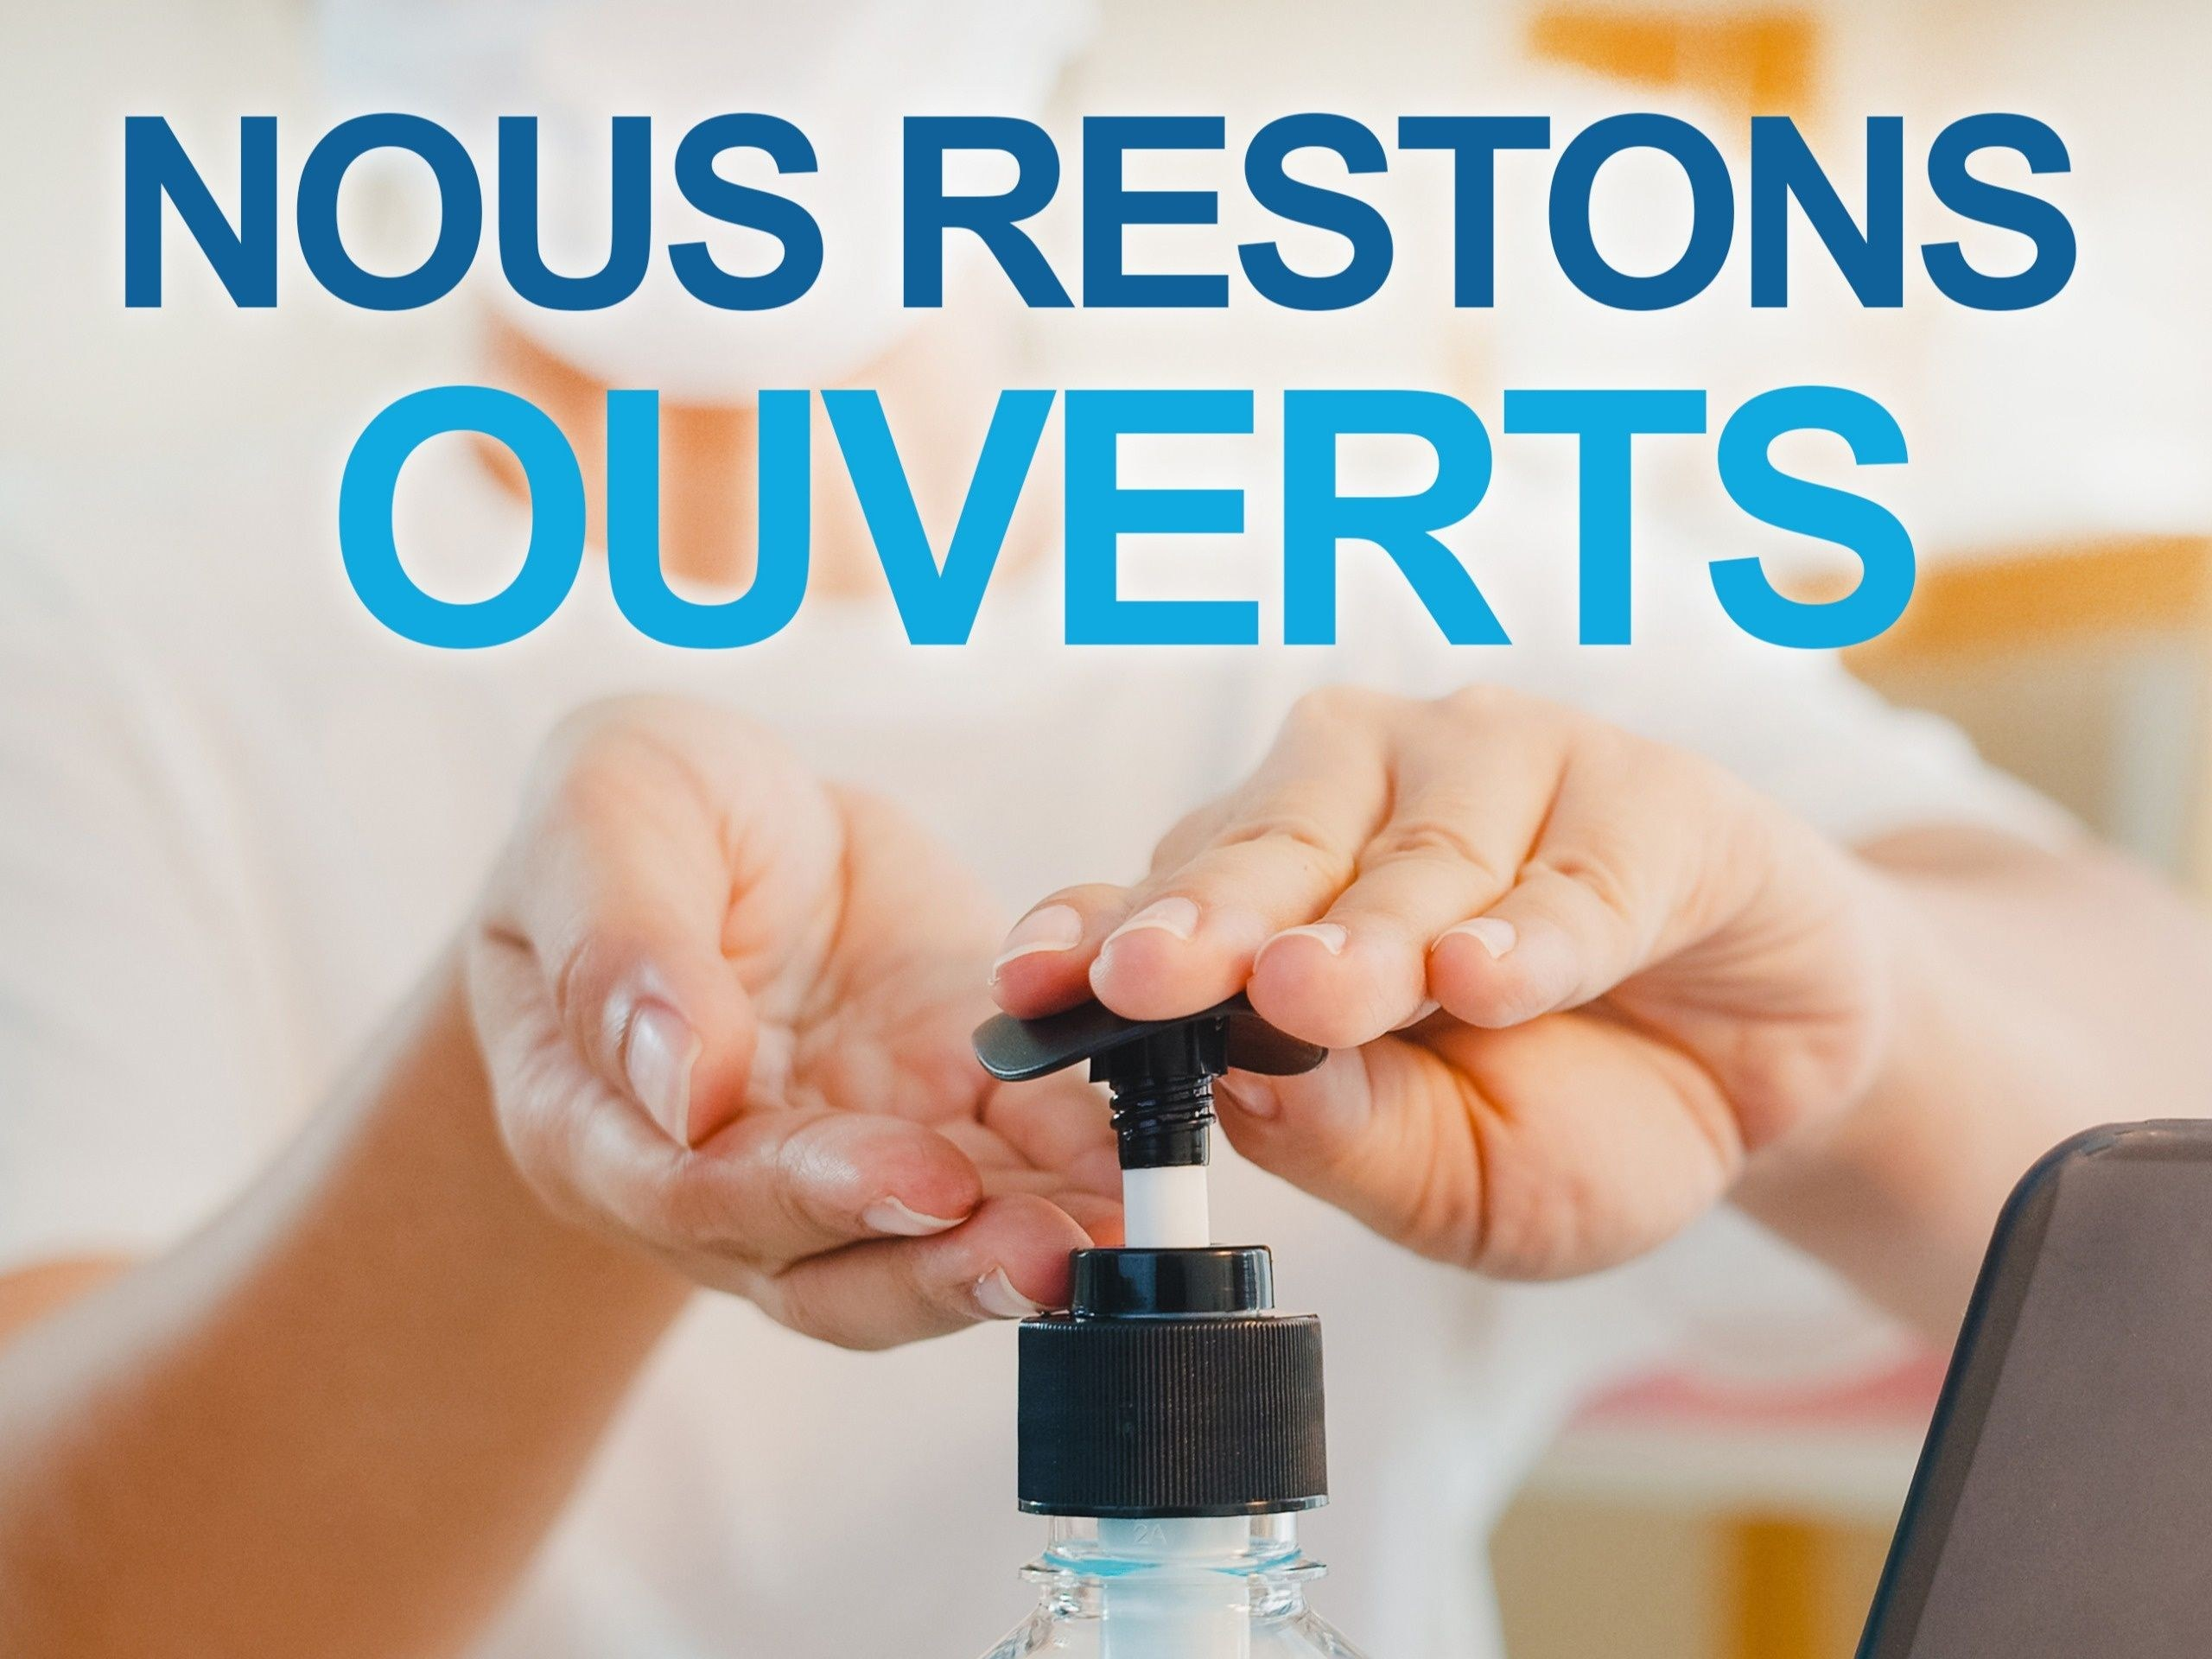 Nous-restons-ouverts-scaled